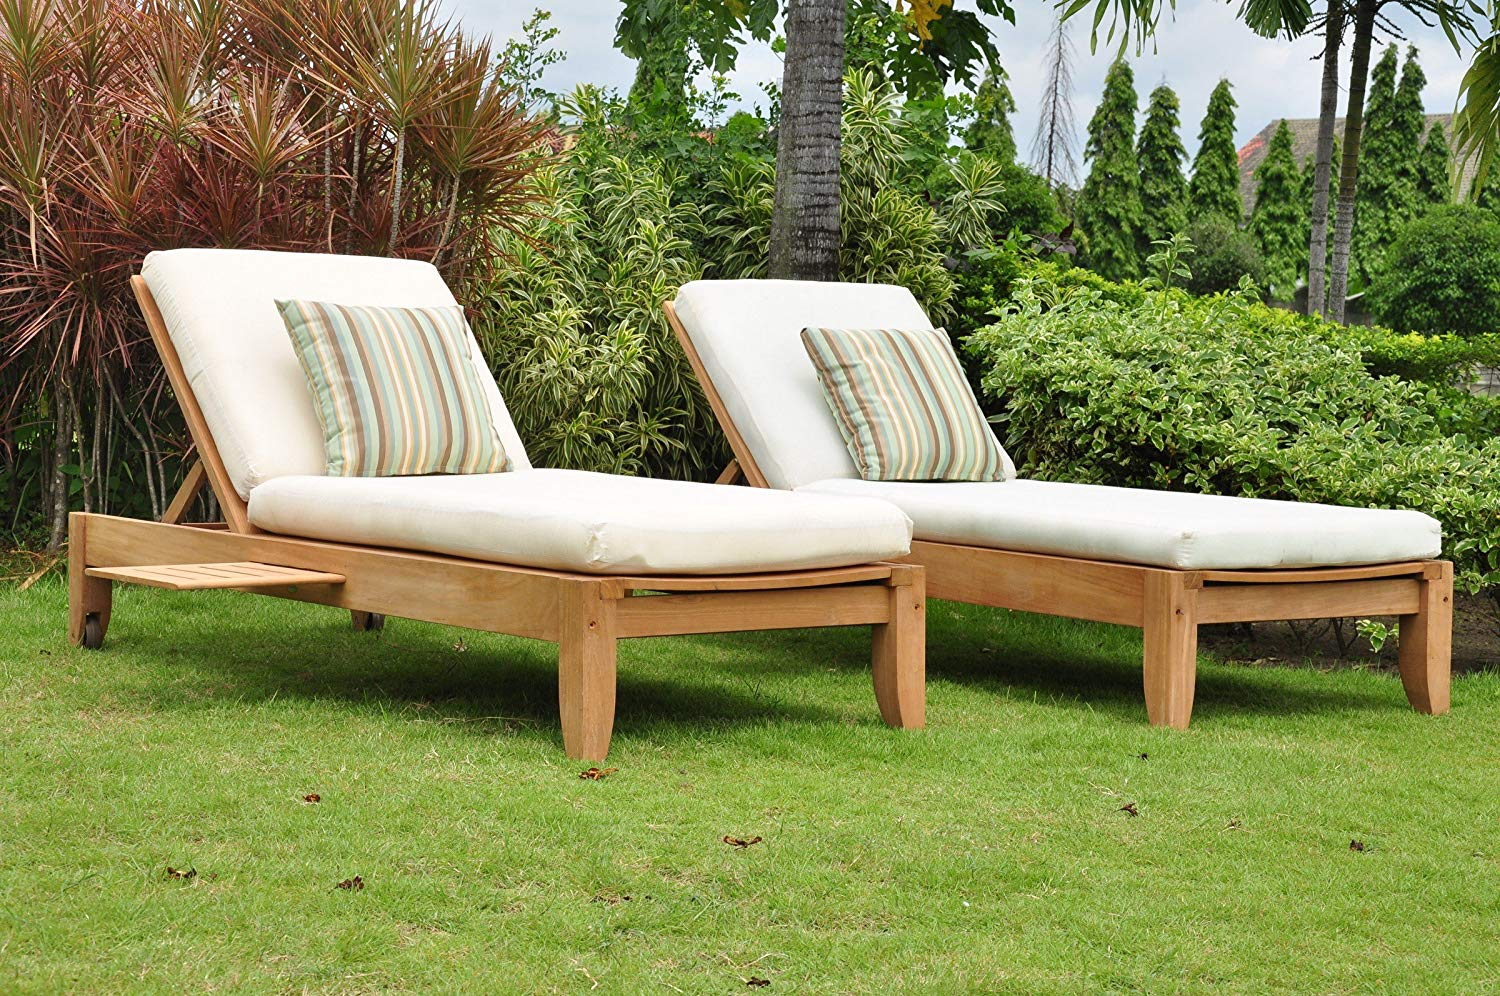 Teak Chaise Lounge Chairs Best Teak Lounge Chairs 2019 Buying Guide Teak Patio Furniture